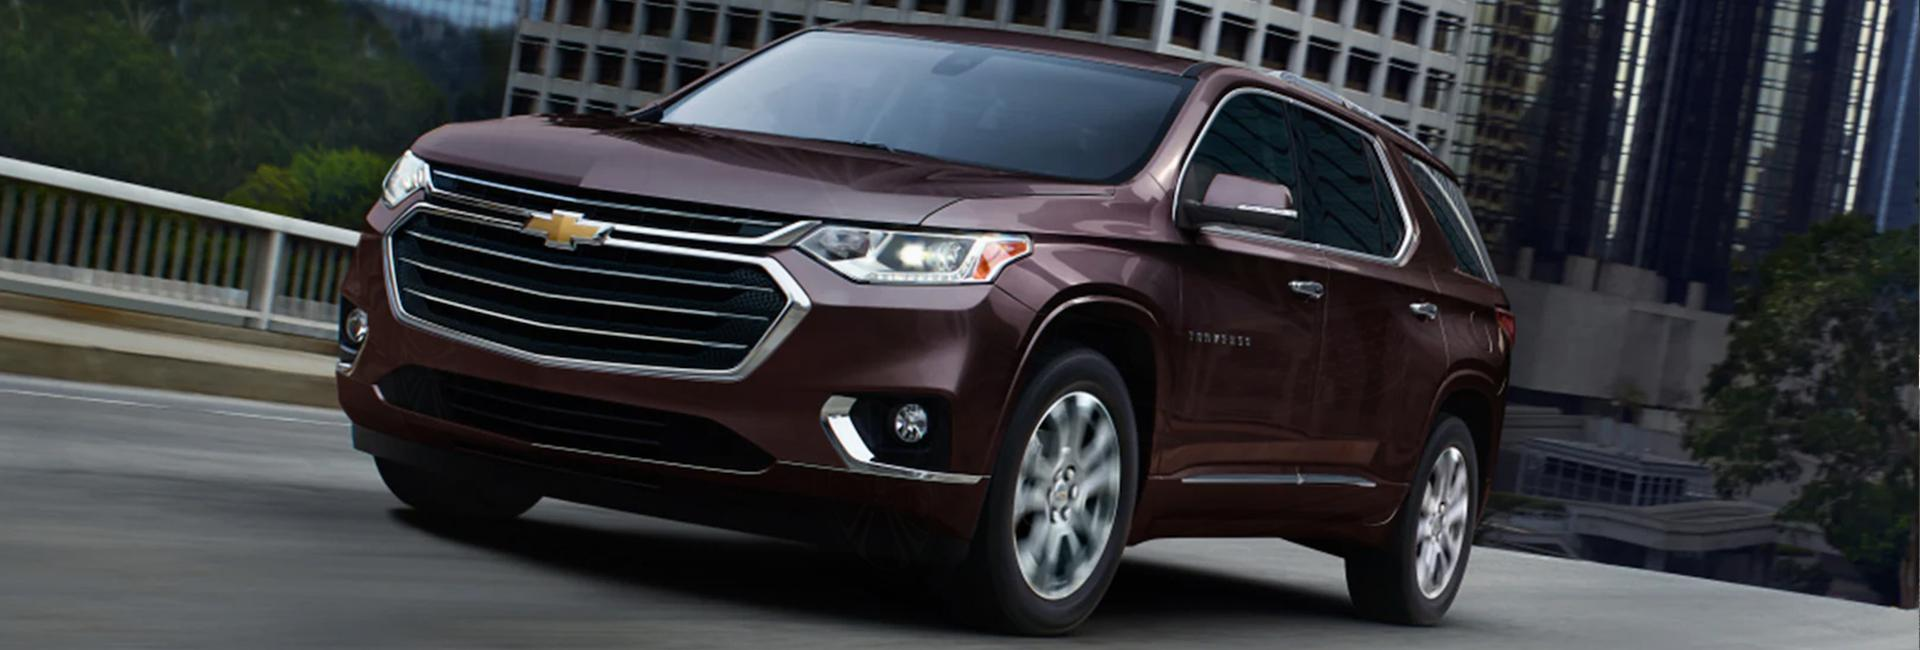 Angled profile of a burgundy Chevy Traverse in motion